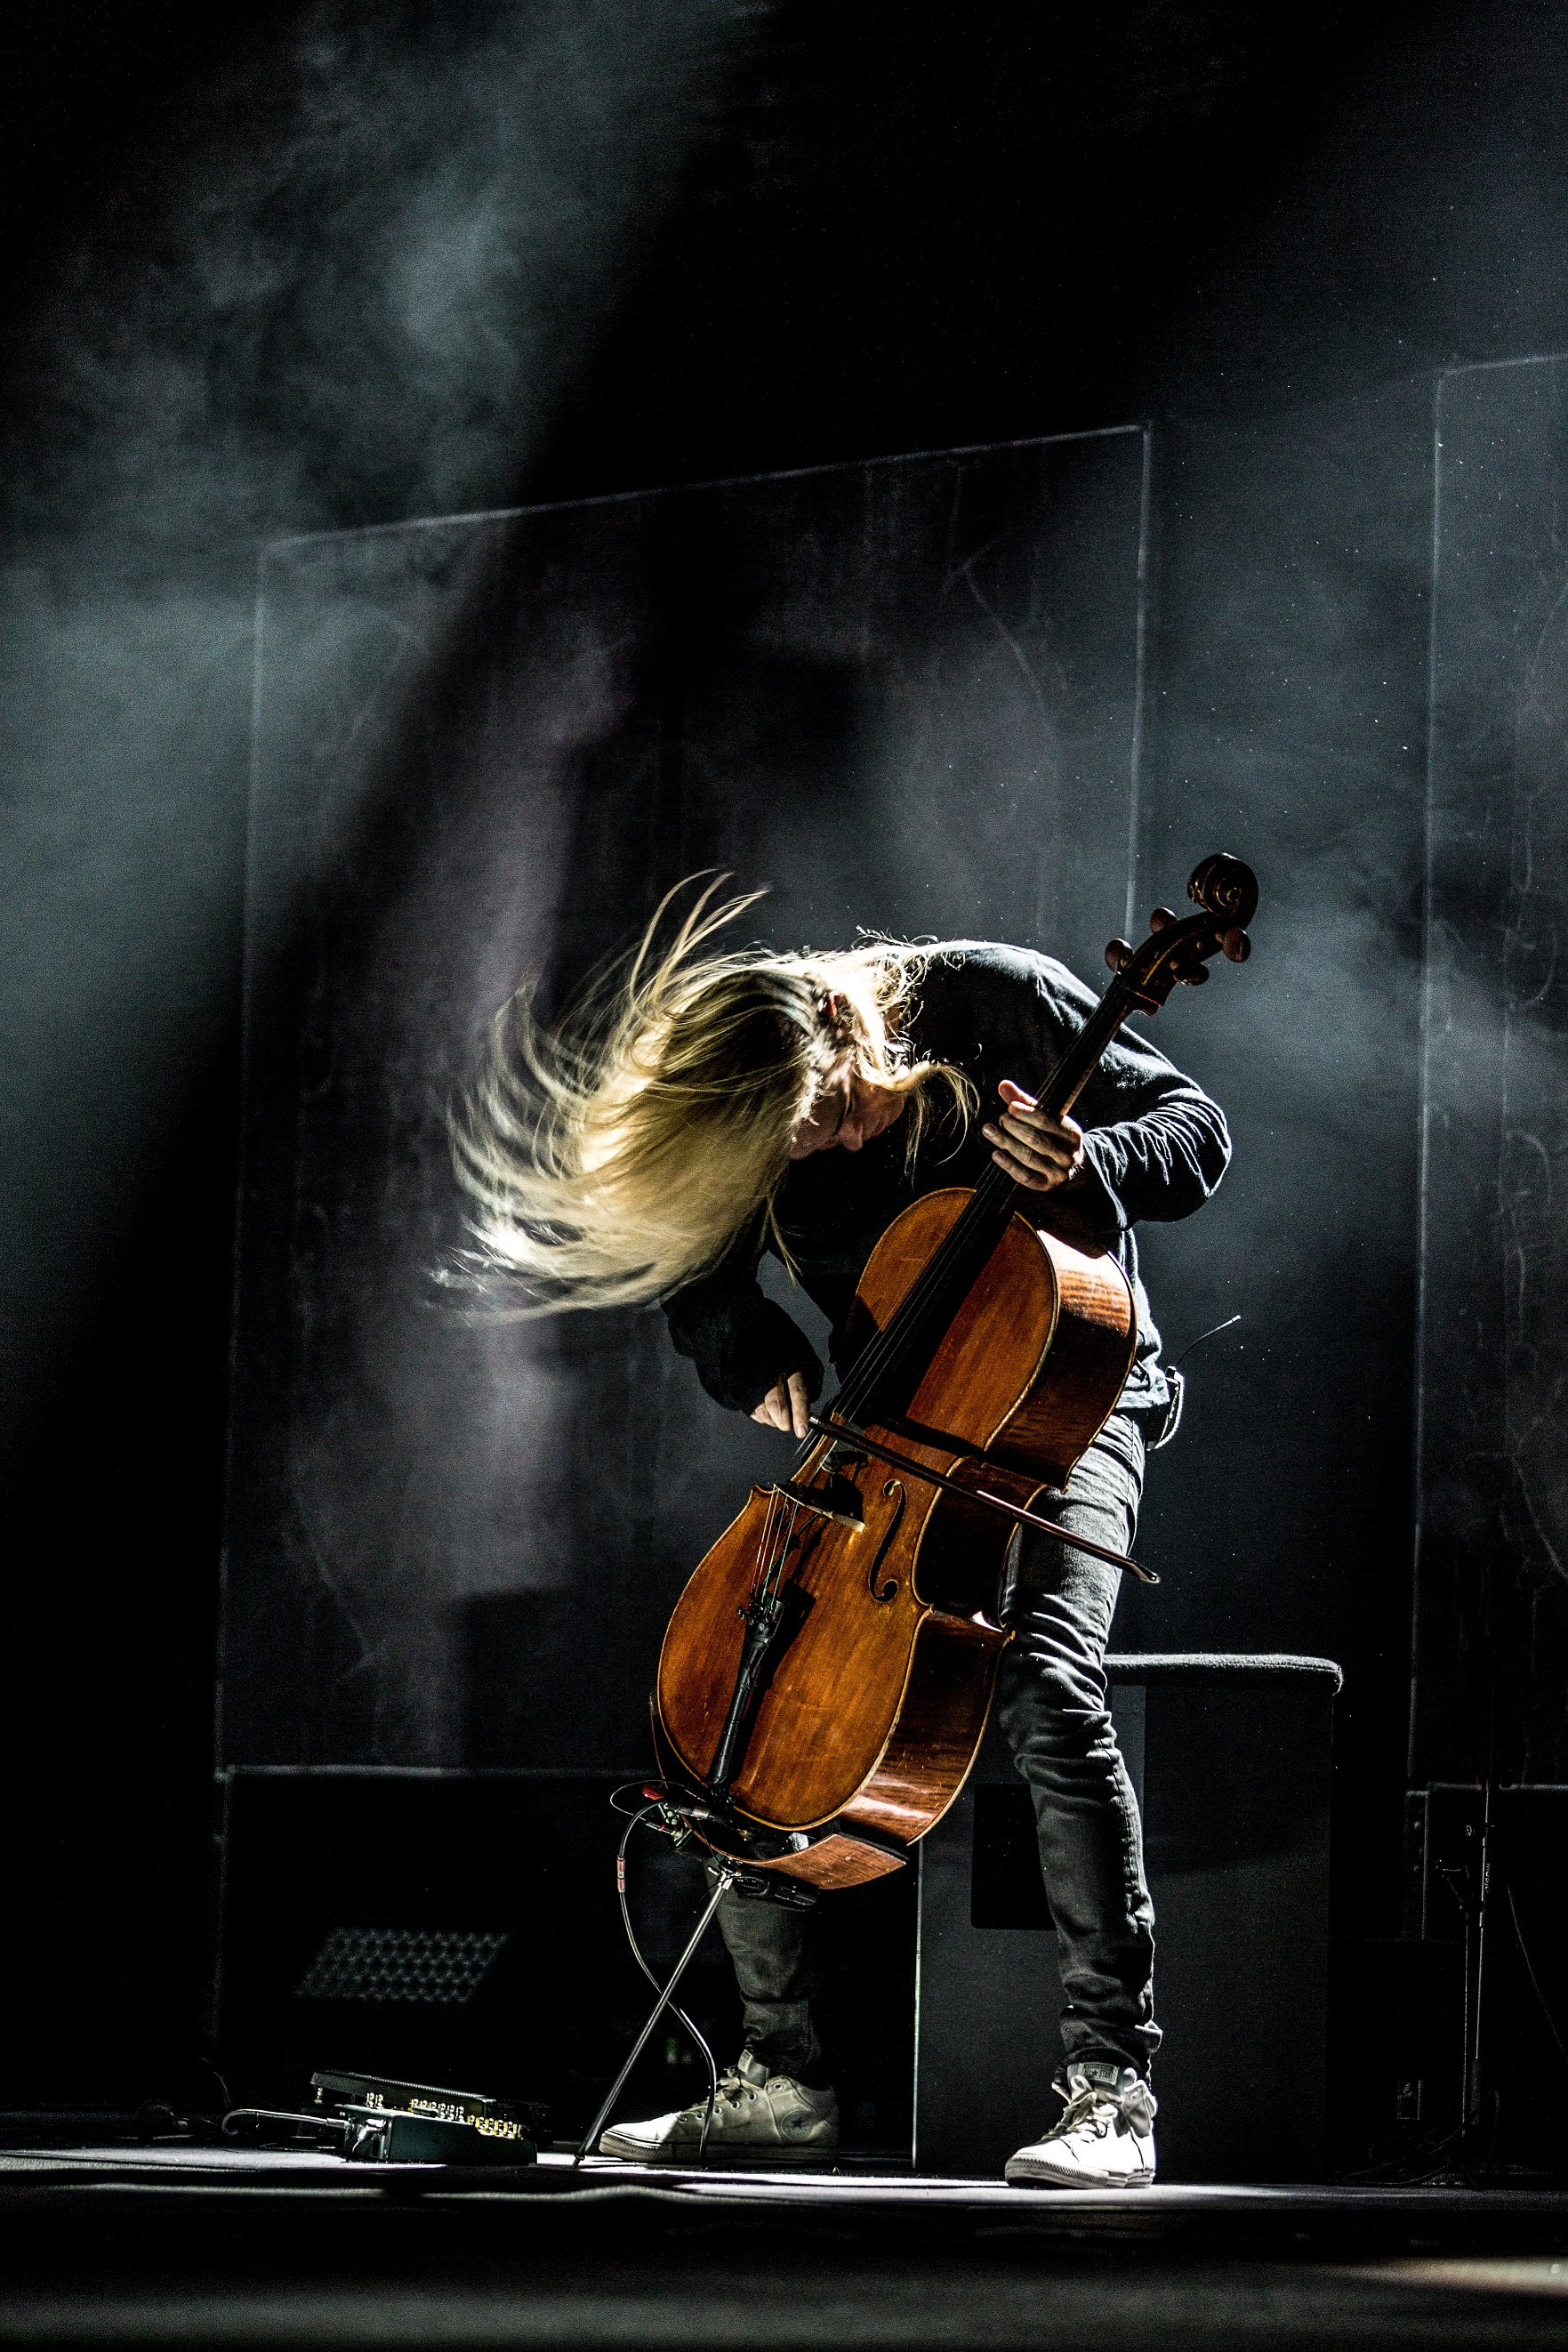 Apocalyptica Plays Metallica By Four Cellos on May 29 at The Ridgefield Playhouse